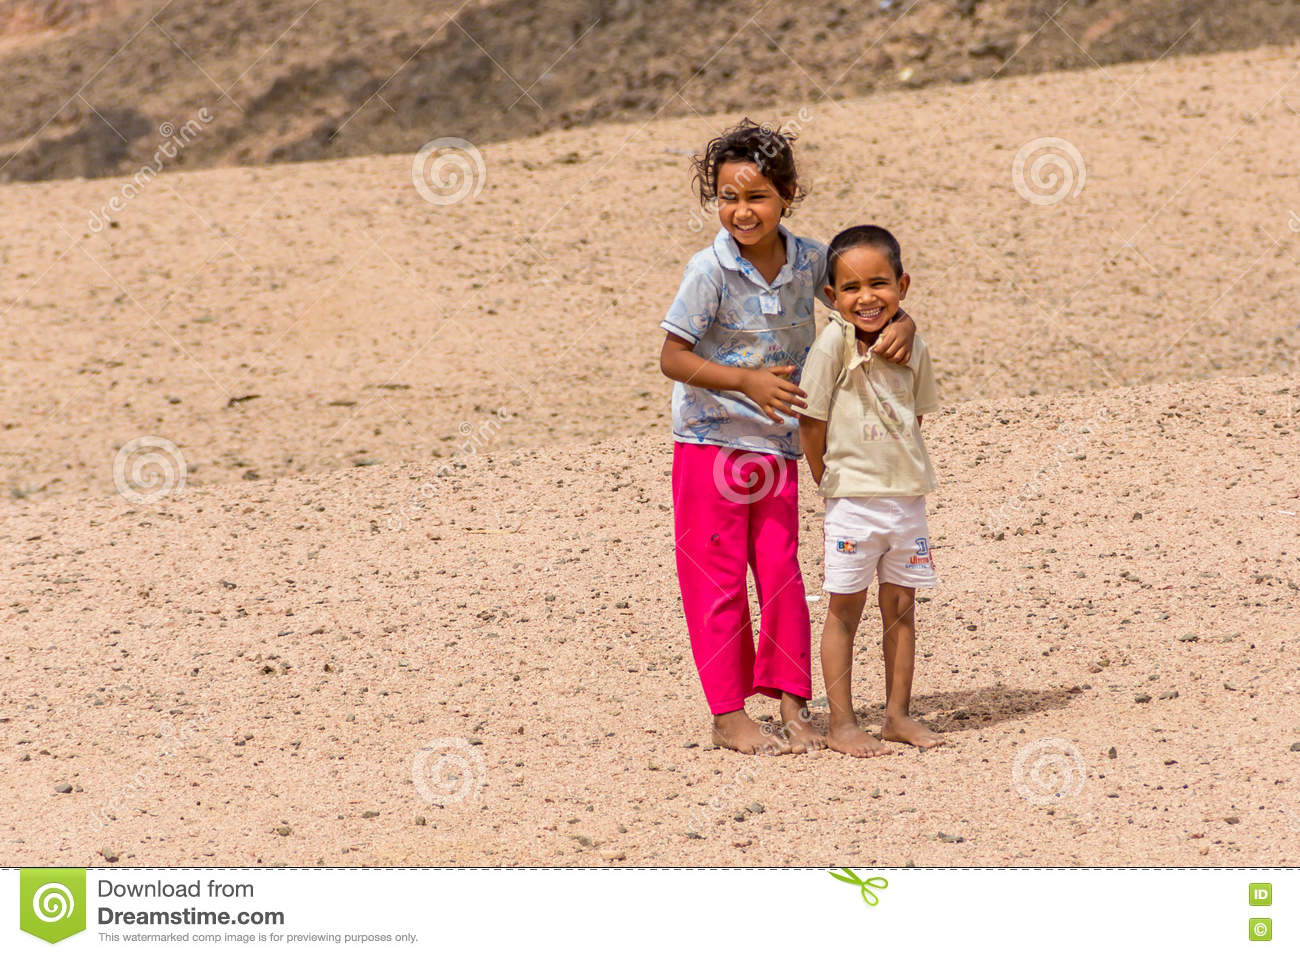 https://thumbs.dreamstime.com/z/barefoot-children-tattered-clothes-bedouin-village-posing-photos-sharm-el-sheikh-egypt-may-72286936.jpg